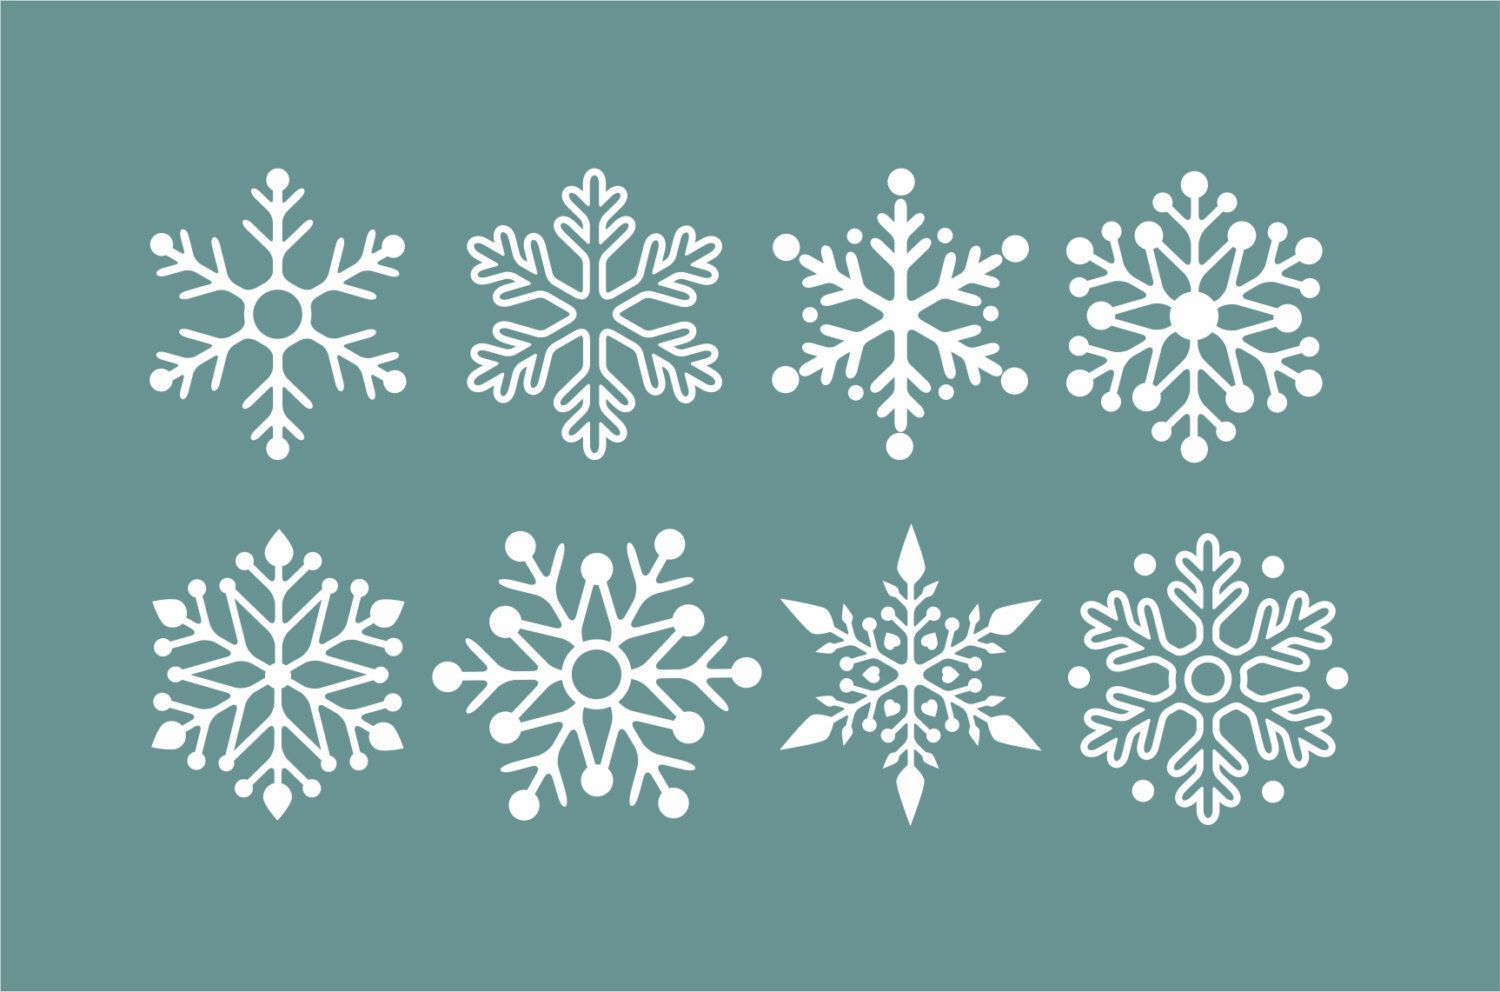 Snowflake Wall Decals, Winter Holiday Decorations, Snow Flake Stickers,  Vinyl Stick On Snow